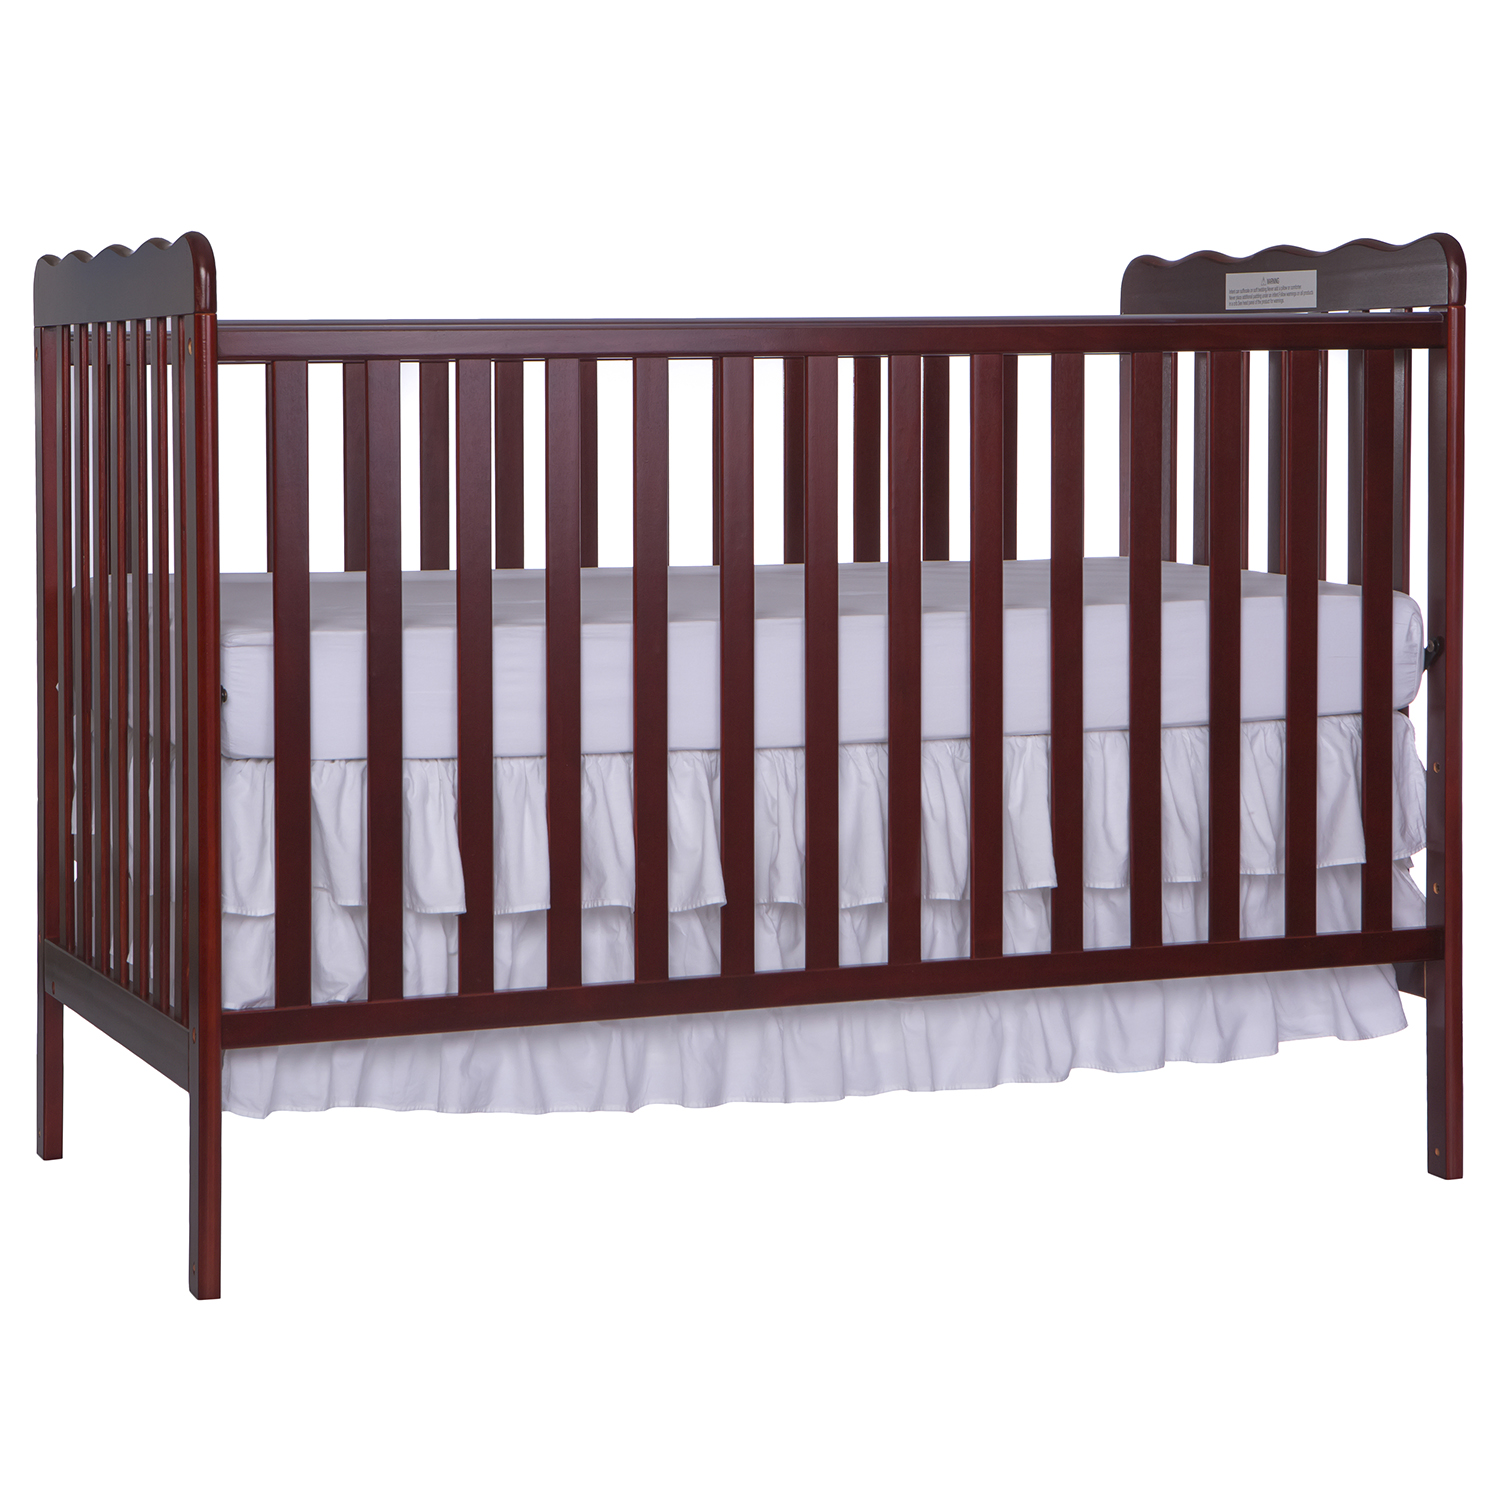 recall white and bennington classic delta crib providence number textured in amazon emery black phone review children cribs convertible